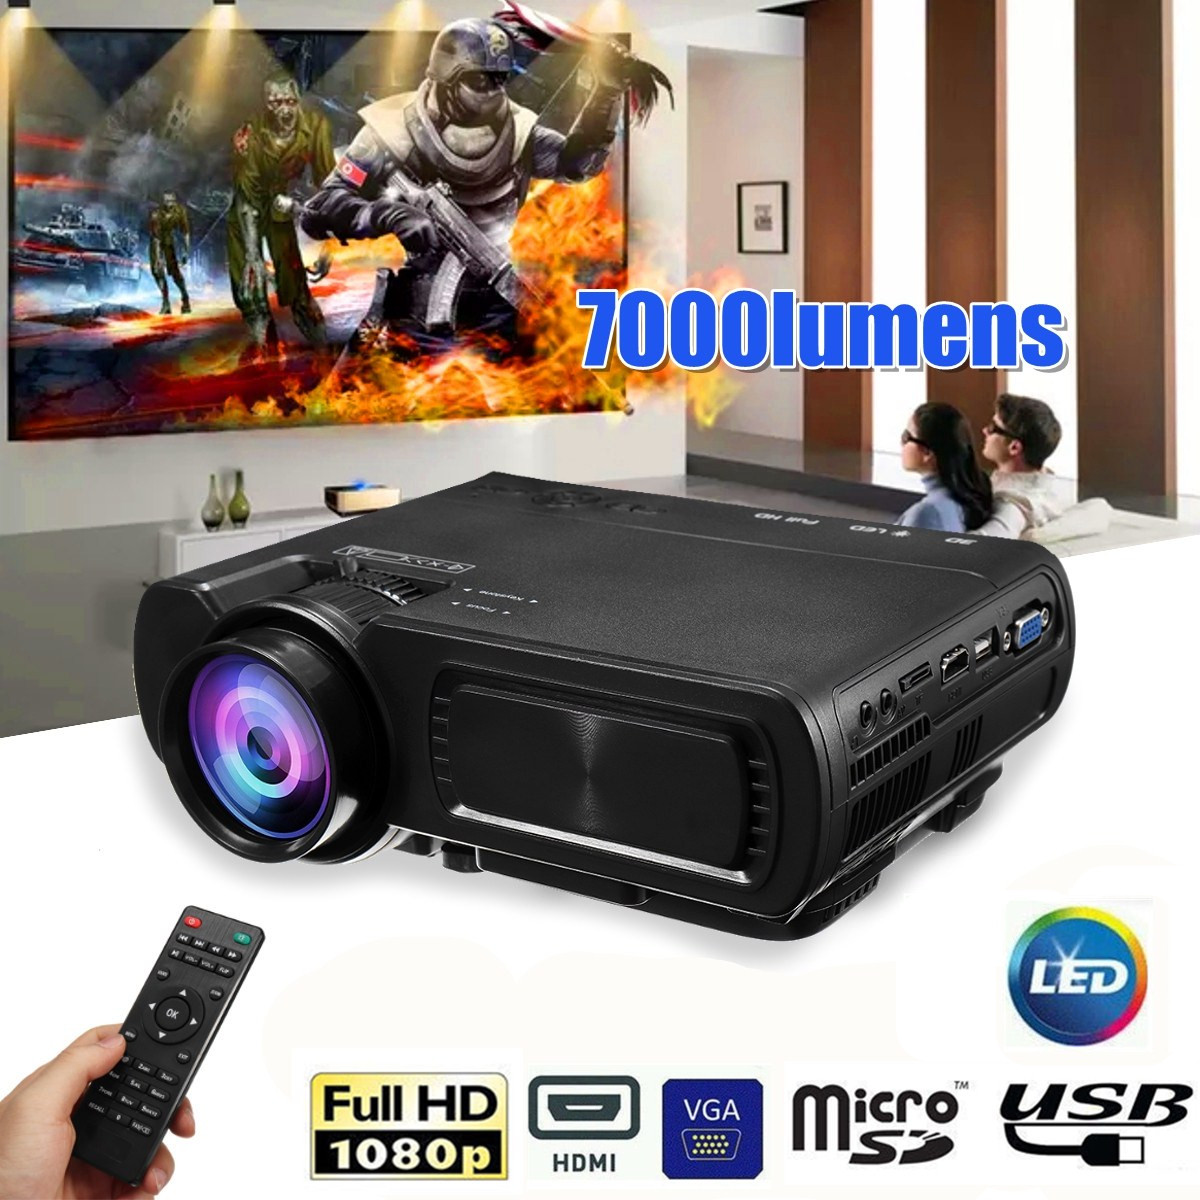 7000LM HD 1080P T5 LCD projector Beamer USB VGA HDMI AV TF For Home Theatre Movie uc28 1080p hd 400lm 16770k led lcd projector with hdmi vga slots